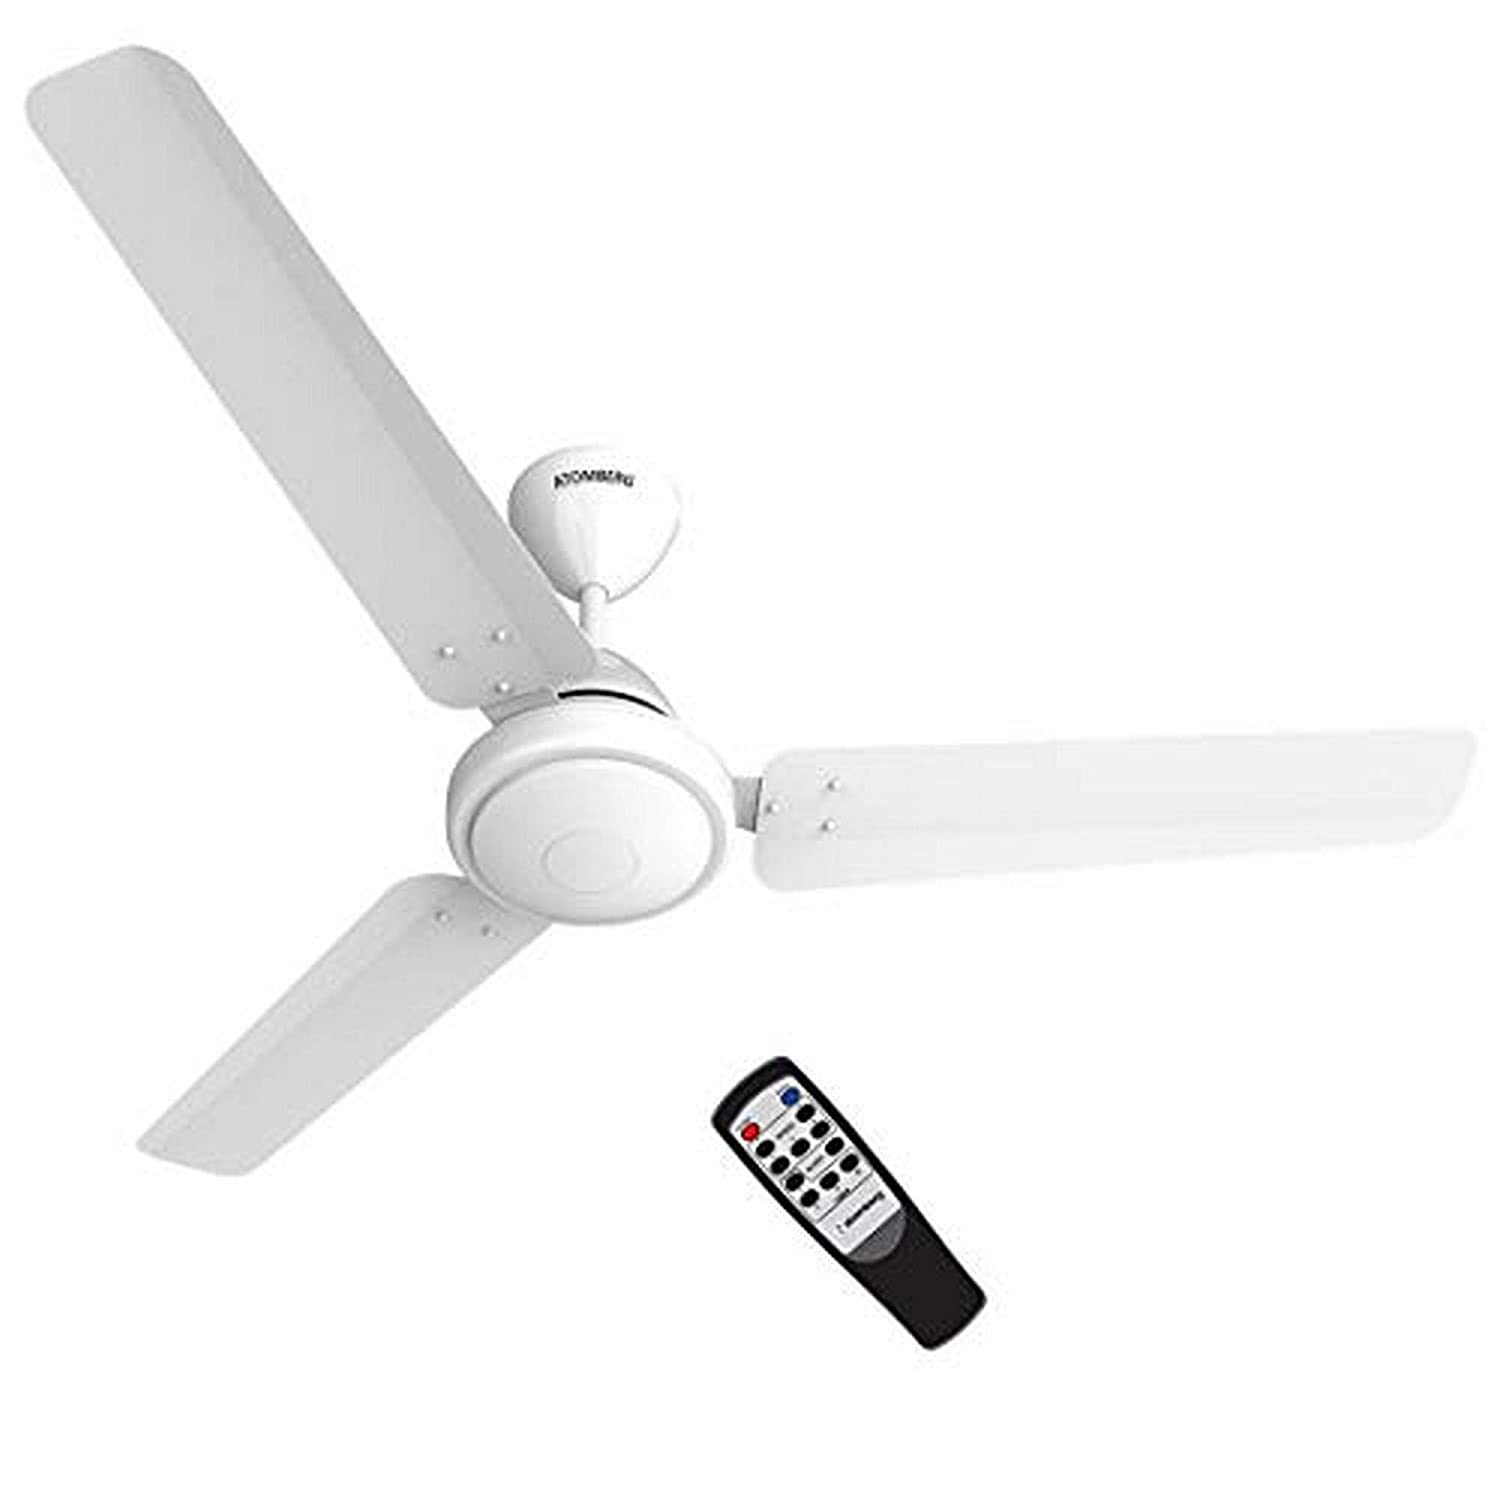 Atomberg Efficio 1200 Mm Bldc Motor With Remote 3 Blade Ceiling Fan White Pack Of 1 Amazon In Home Improvement